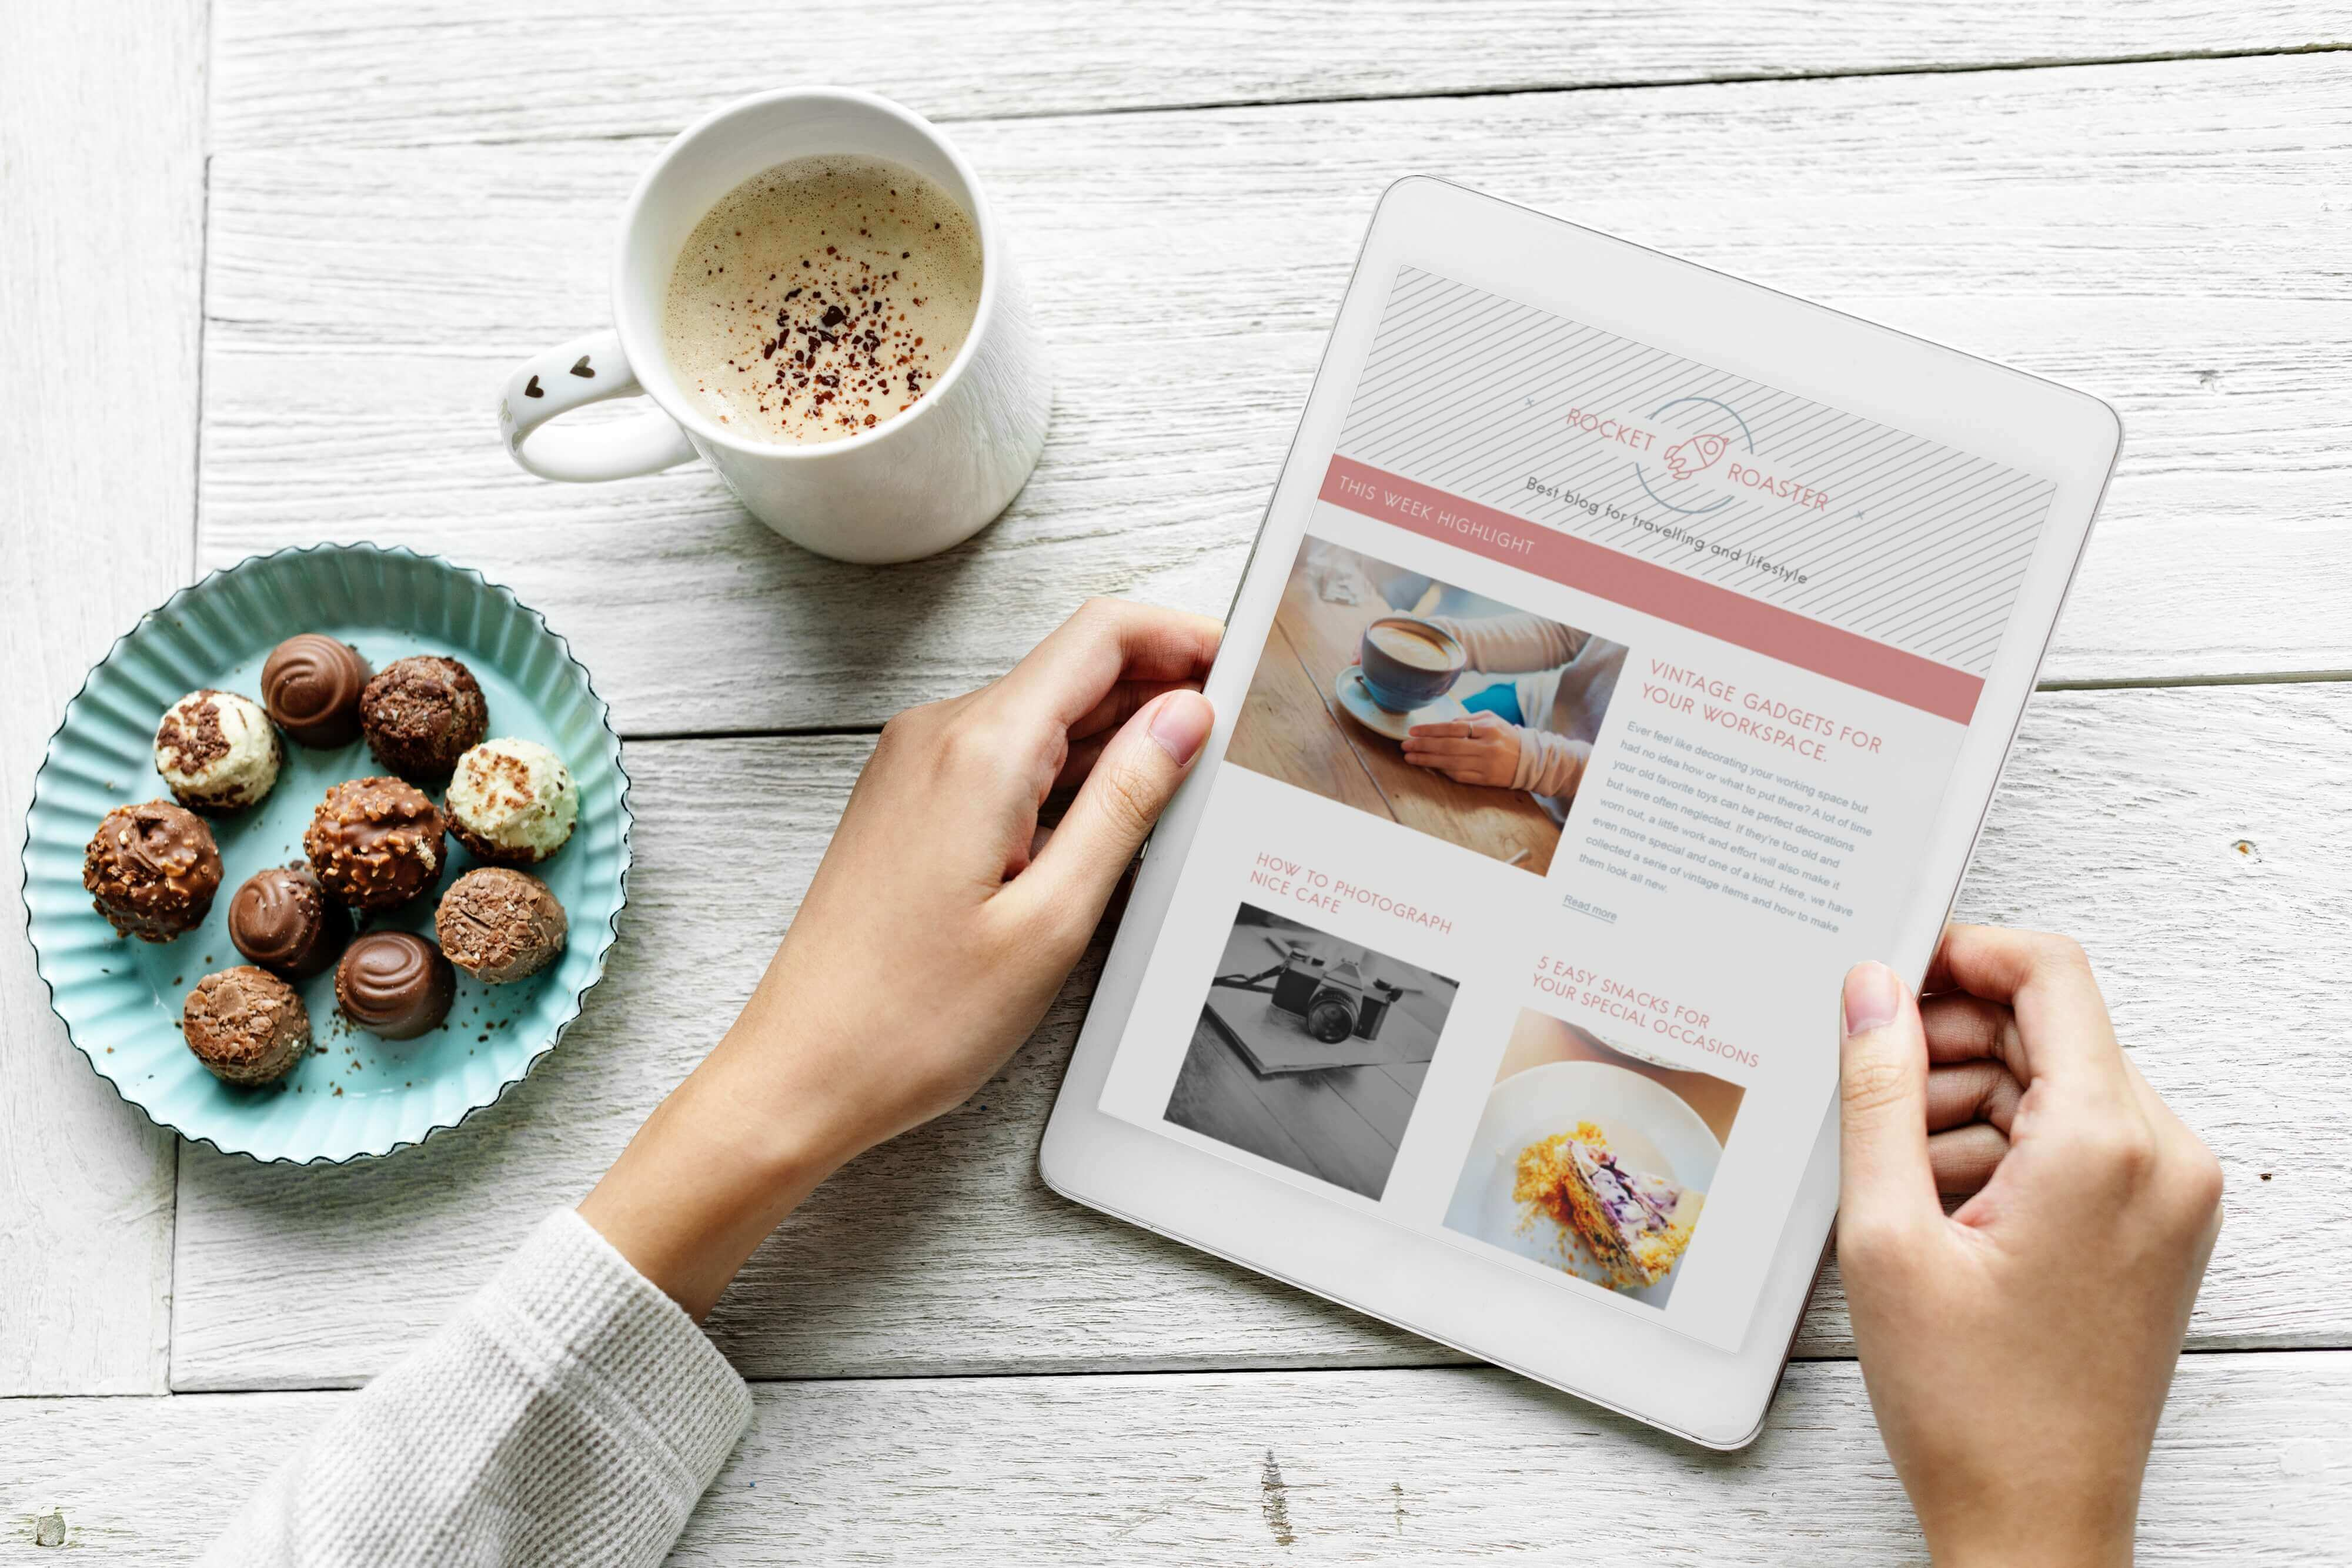 A white table with a cup of coffee and a plate of sweets placed over it. A pair of female hands are carrying a tablet showing some blog posts.